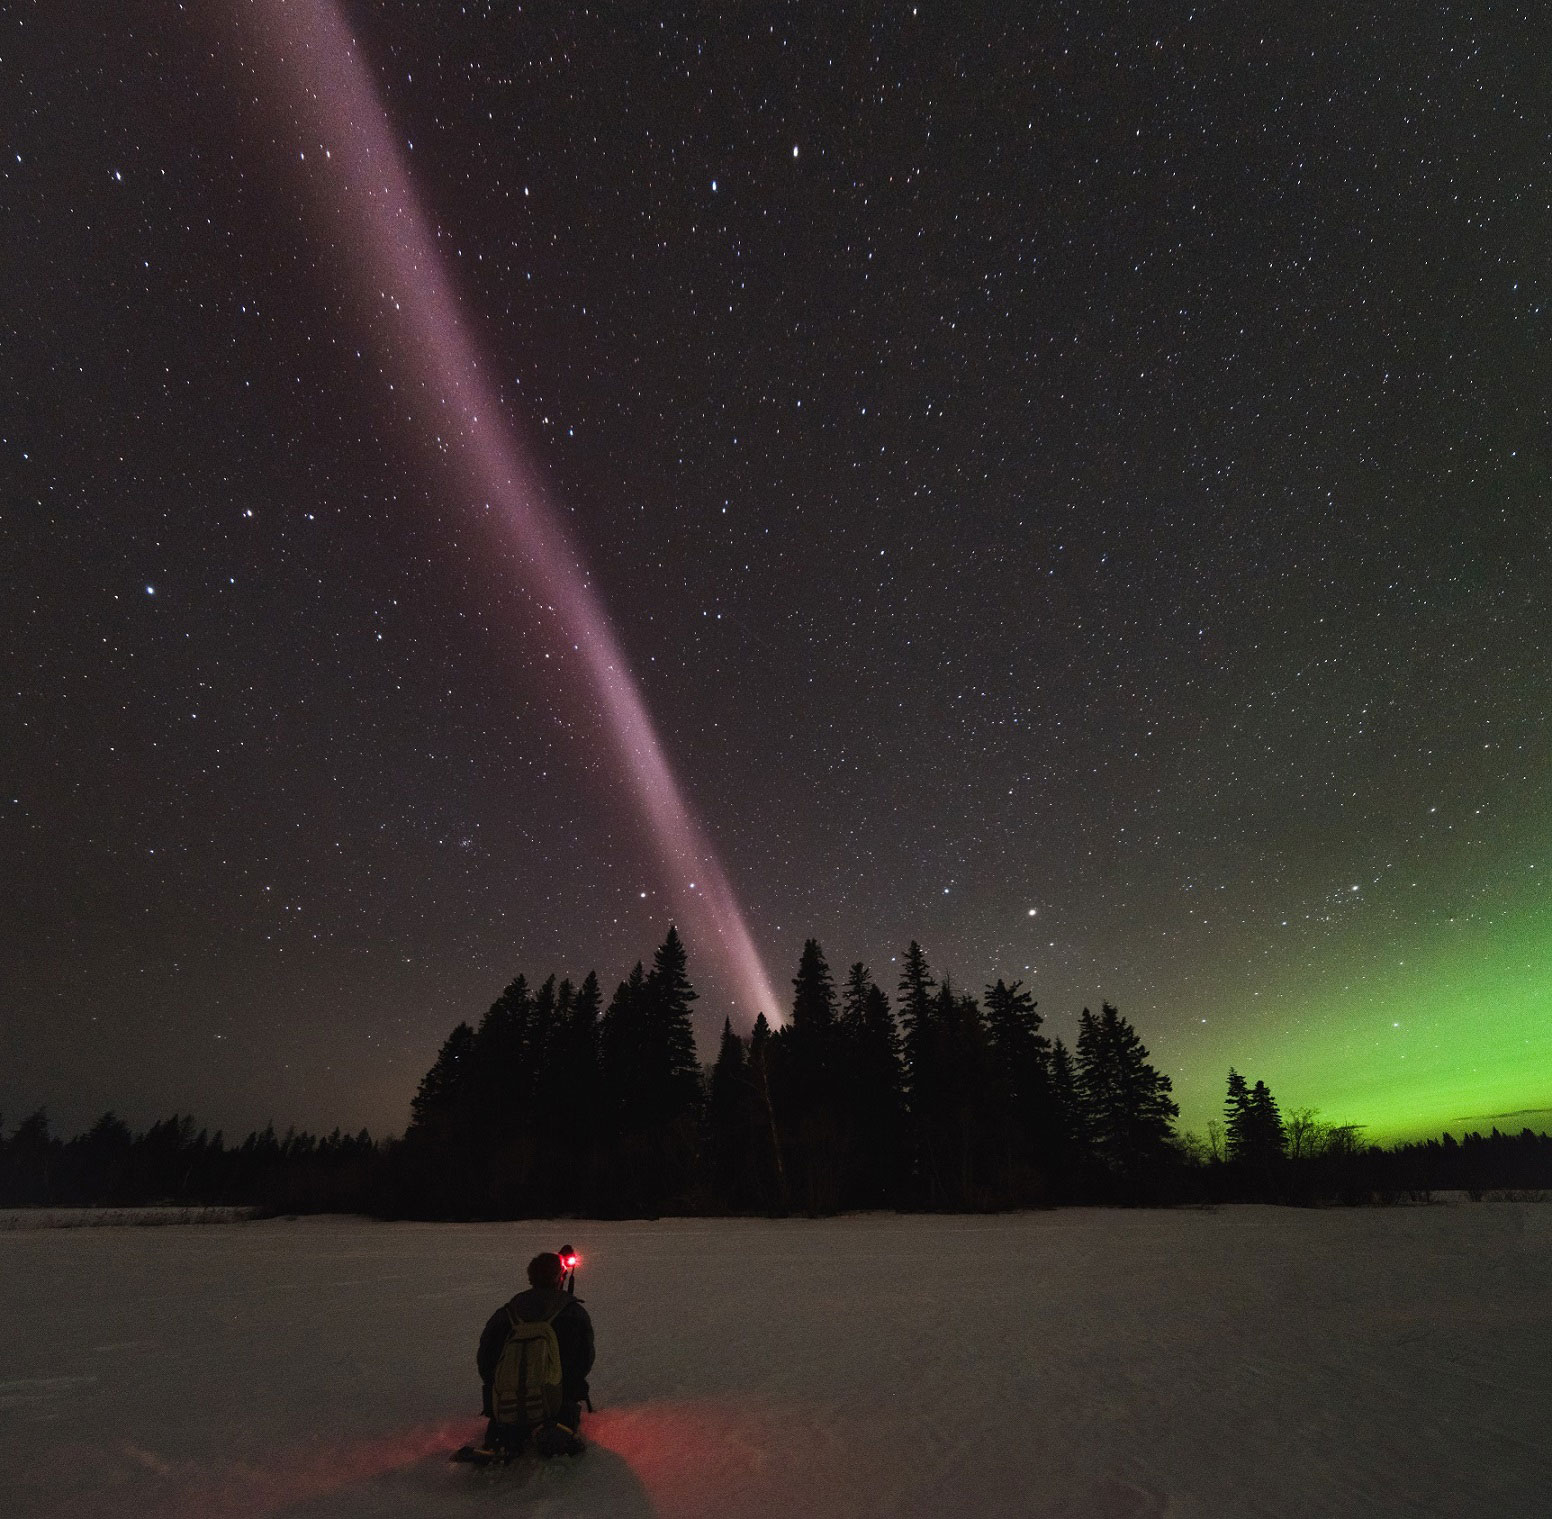 Scientists explained the origin of the mysterious light streaks in the sky